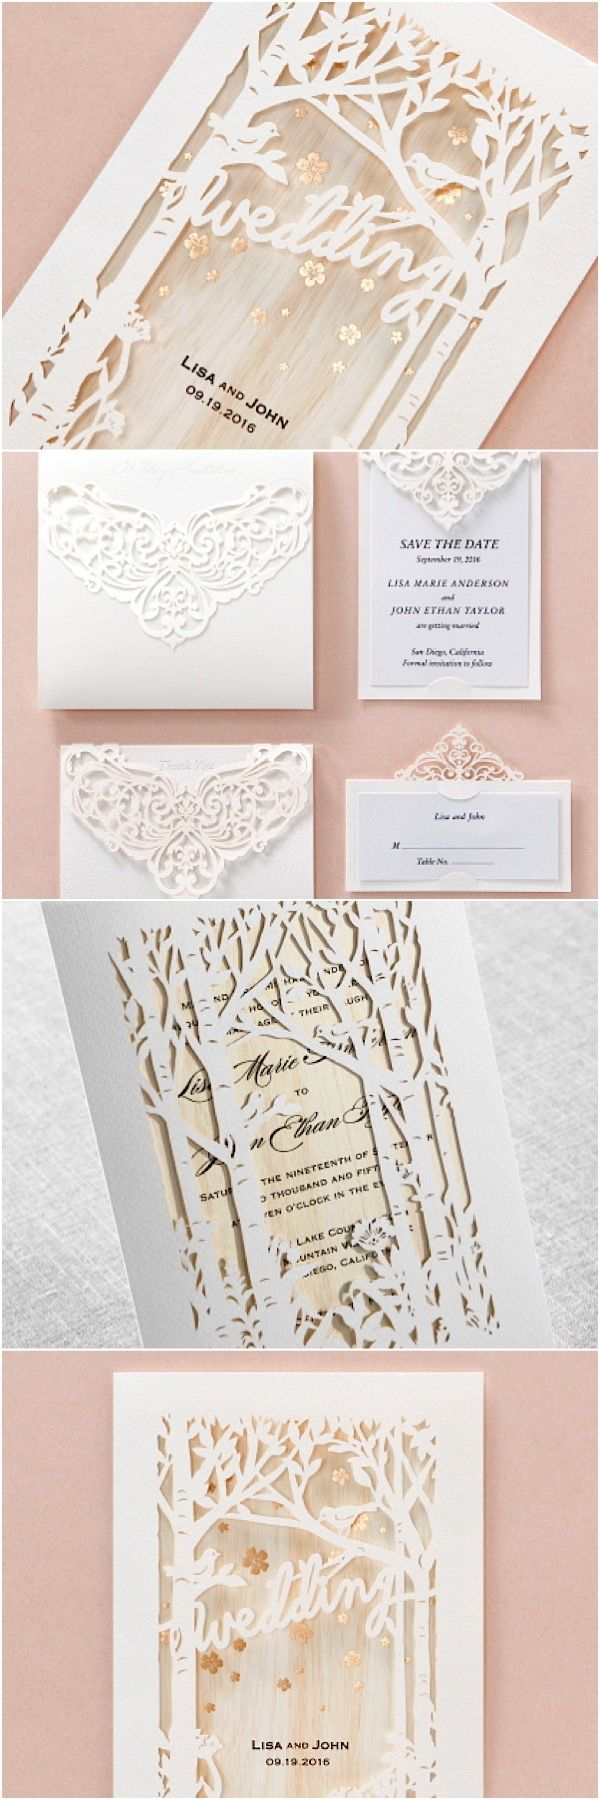 58 Best Invitations Images On Pinterest Wedding Stationery